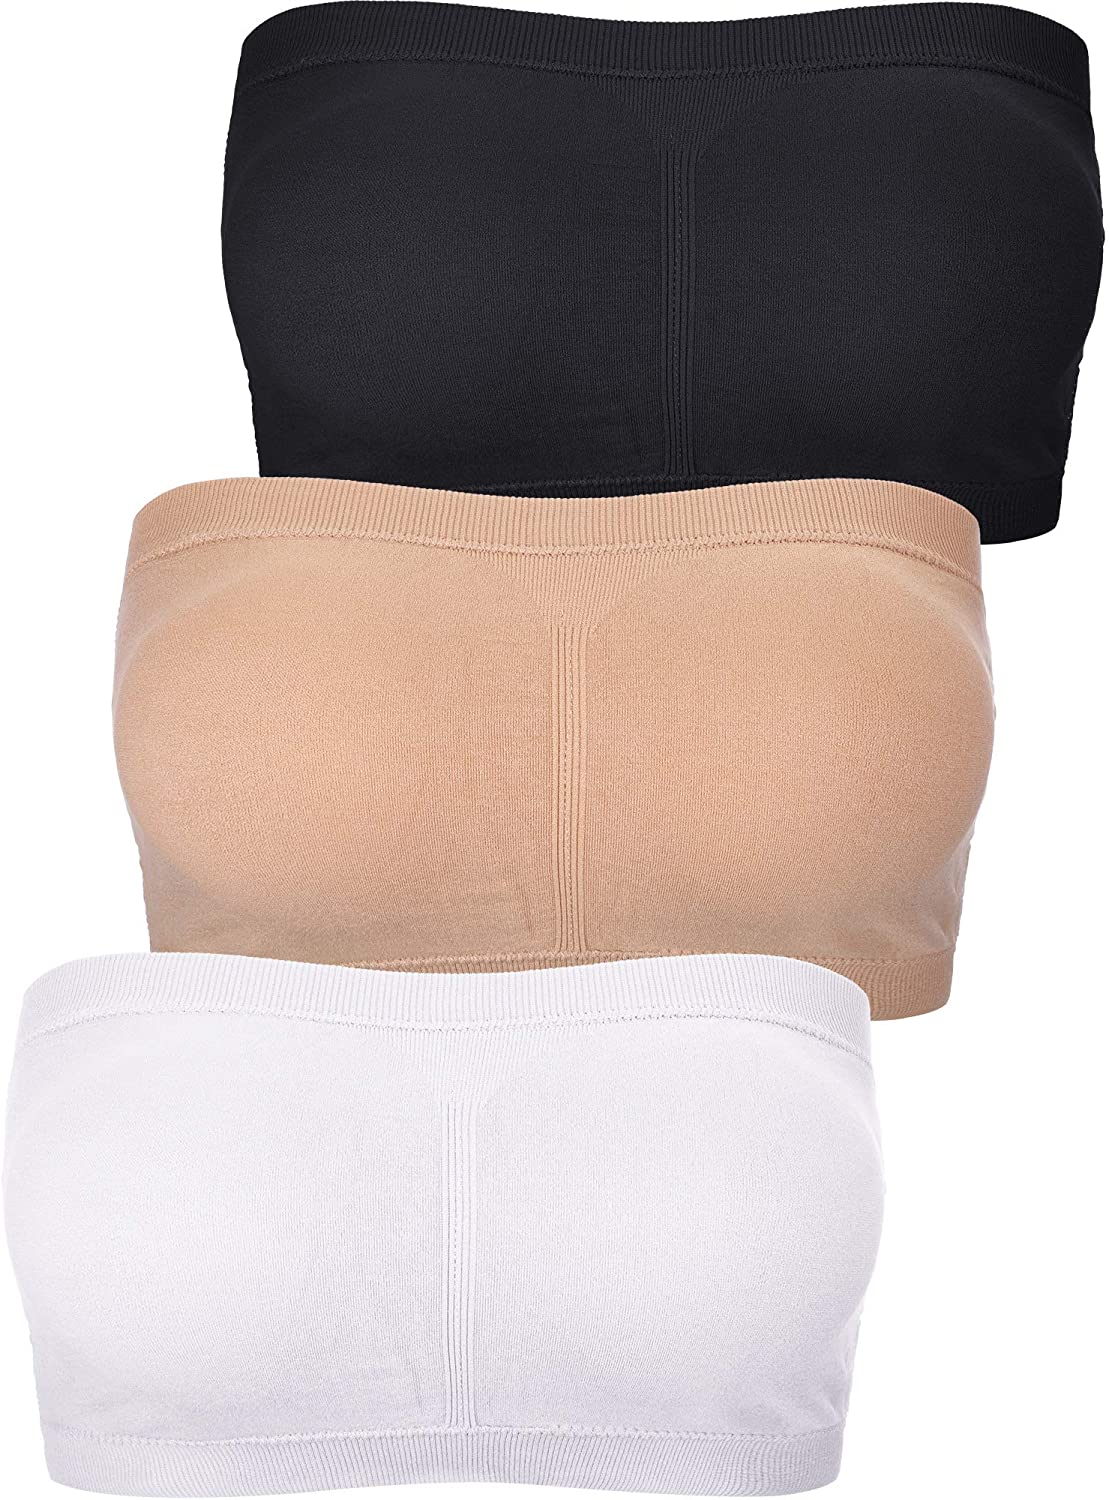 Boao 3 Pieces Women Bandeau Bra Padded Strapless Brarette Soft Bra Seamless Bandeau Tube Top Bra Assorted Sizes